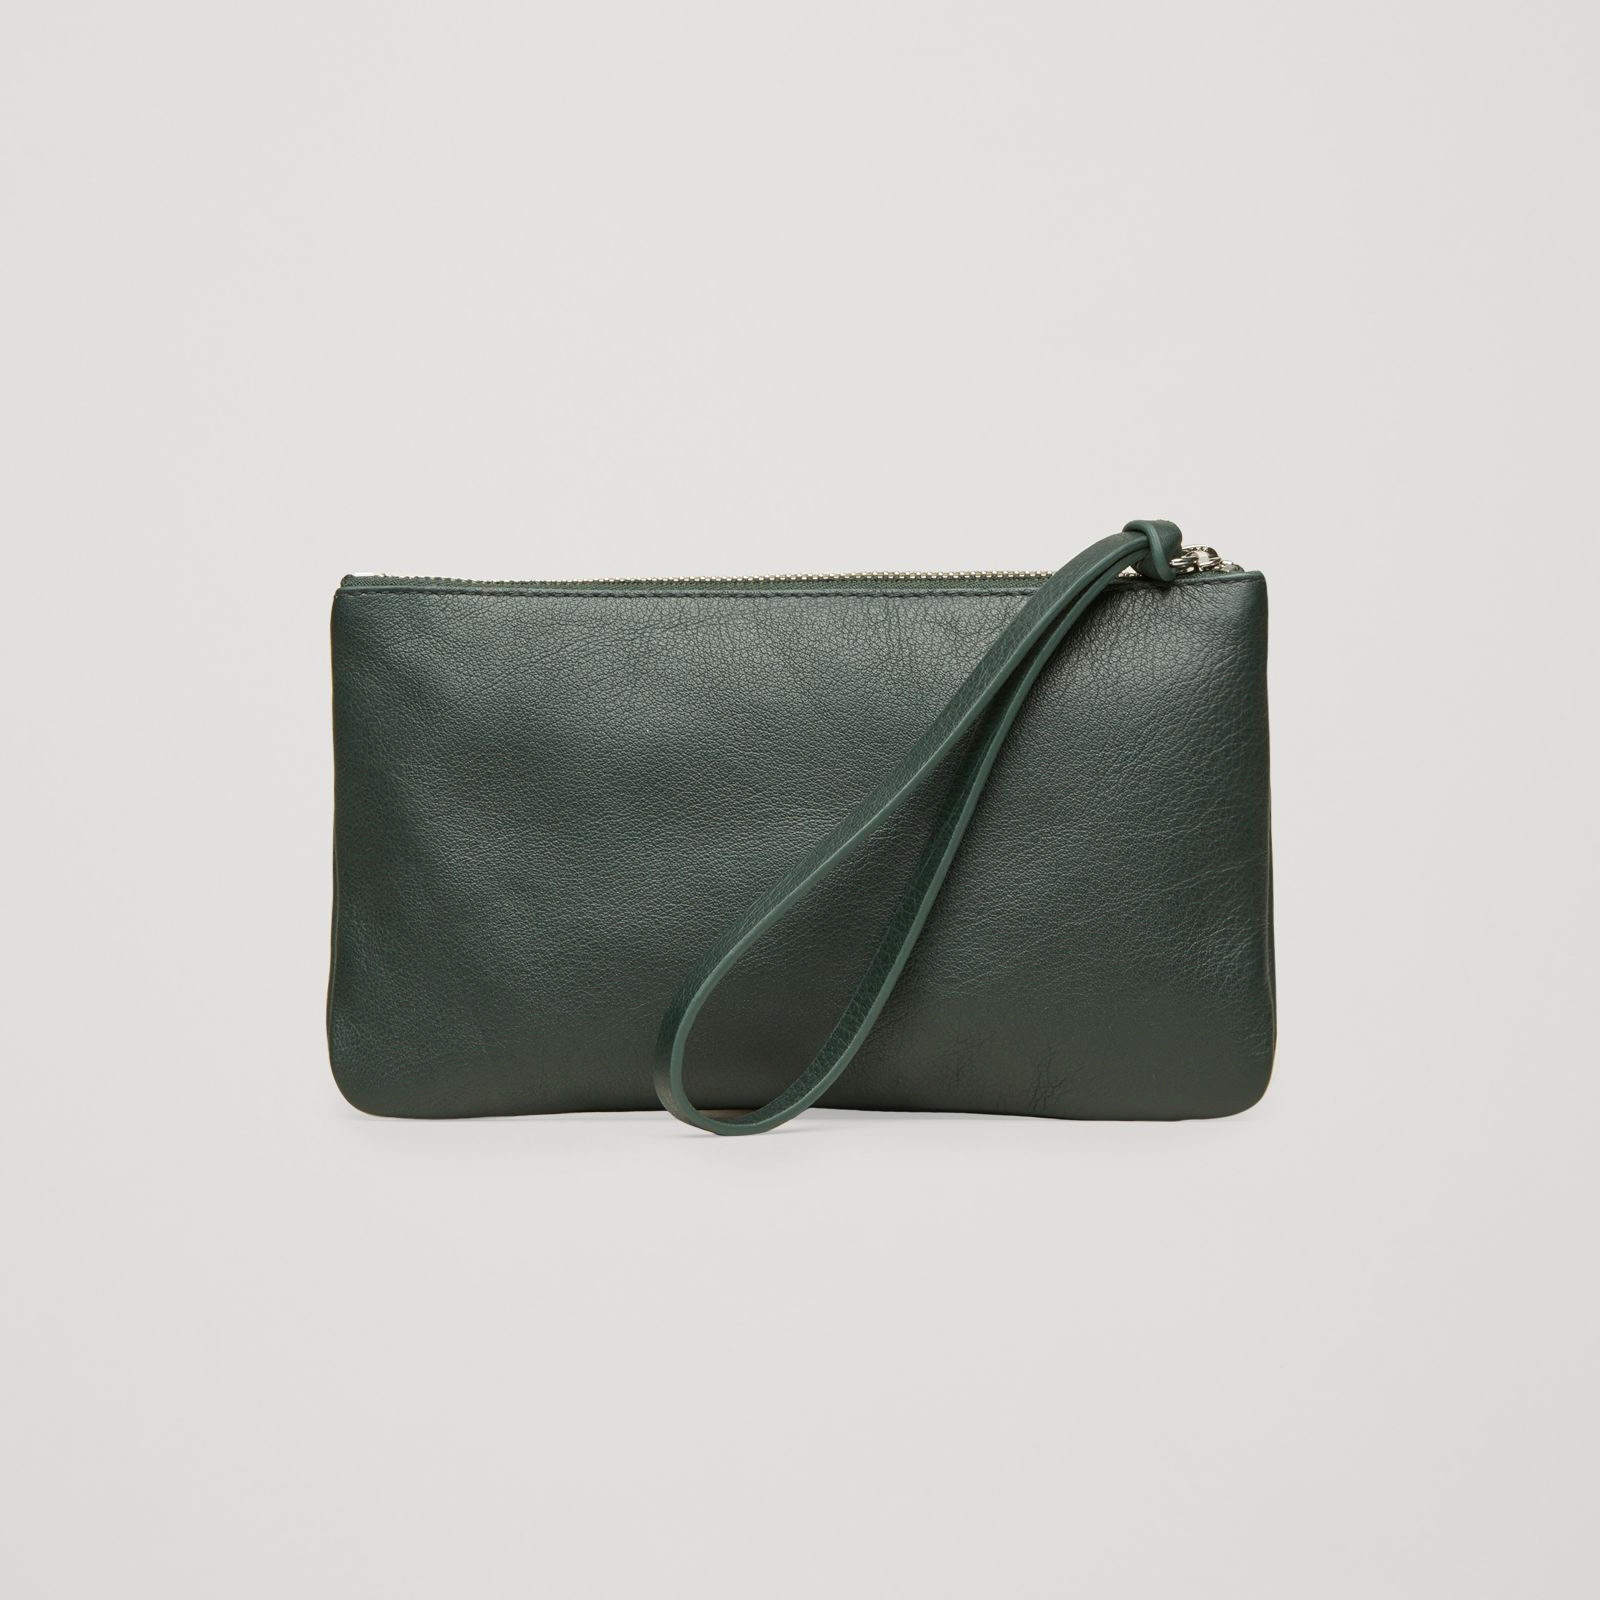 COS☆LEATHER PURSE WITH CONTRAST POCKET / green